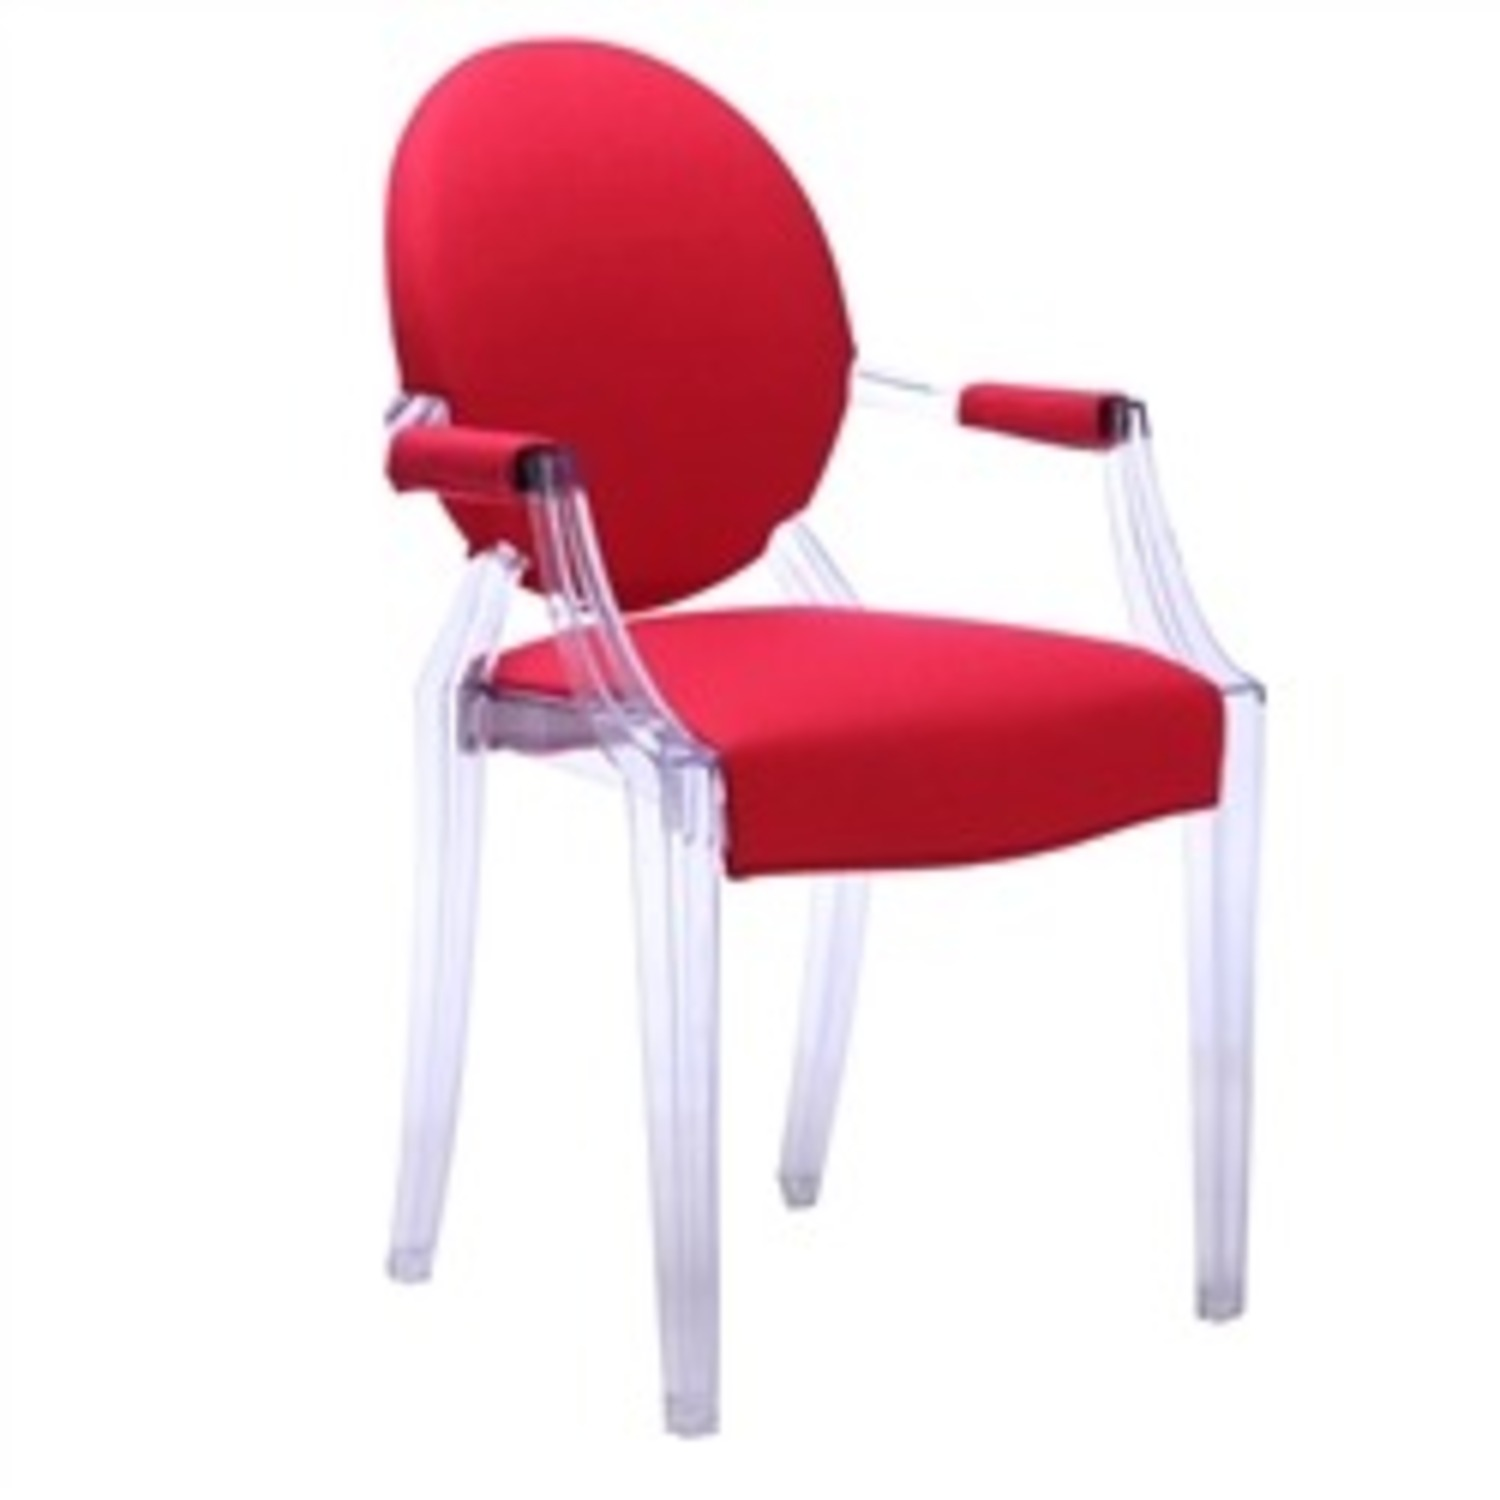 Armchair In Red Fabric & Acrylic Base - image-2